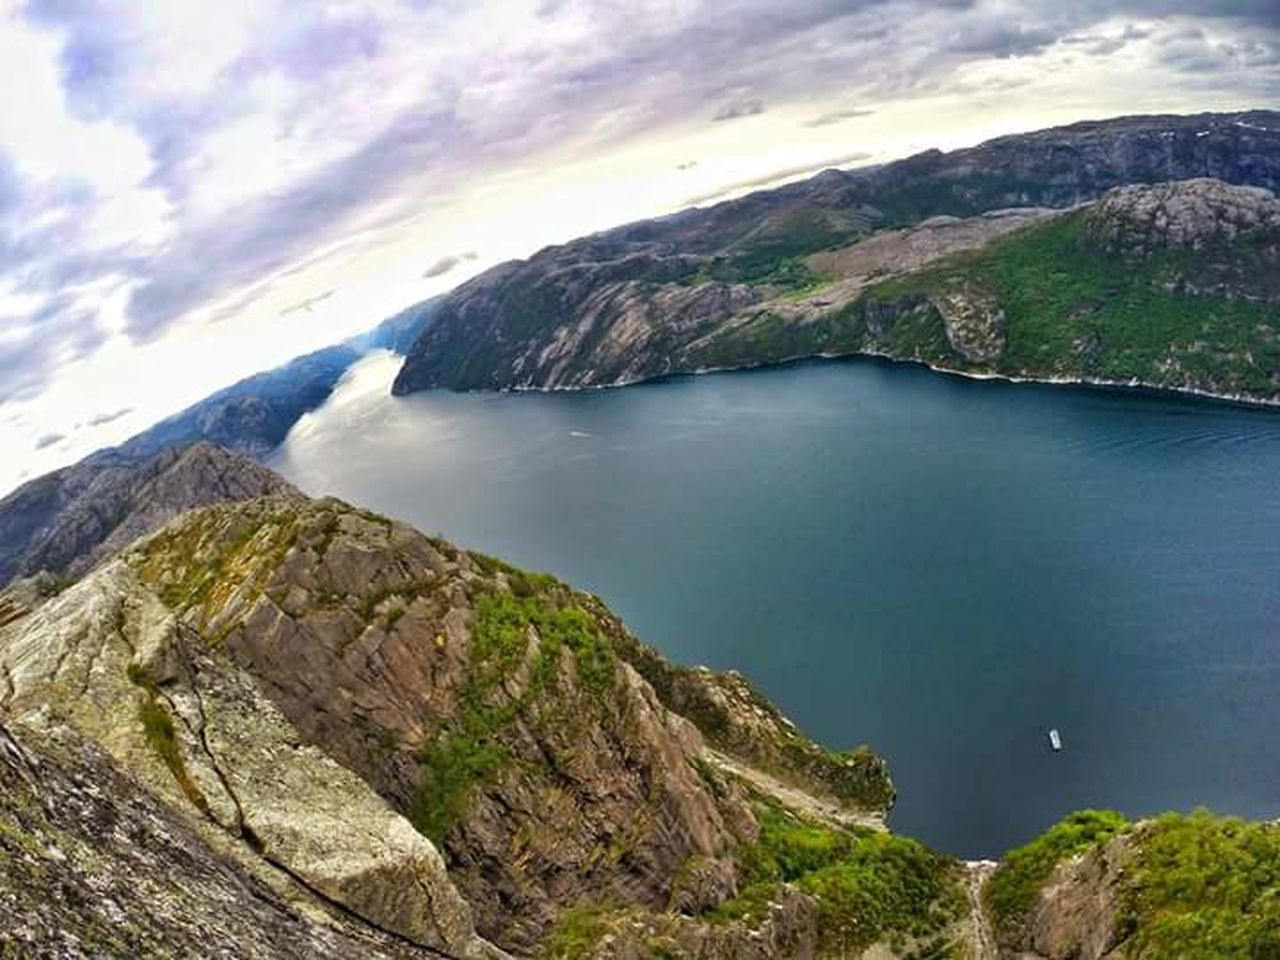 Norway Norge Lysefjord Fjordsofnorway Preikestolen Norgefoto Landscape Outdoors Beauty In Nature Nature Worldplaces Photography Traveltheworld Goprophotography Travel Photography Aroundtheworld Gopro Worldcaptures Scenics Eyemphotography Goprotravel Rogaland Ryfylke Friluftsliv Traveladdict